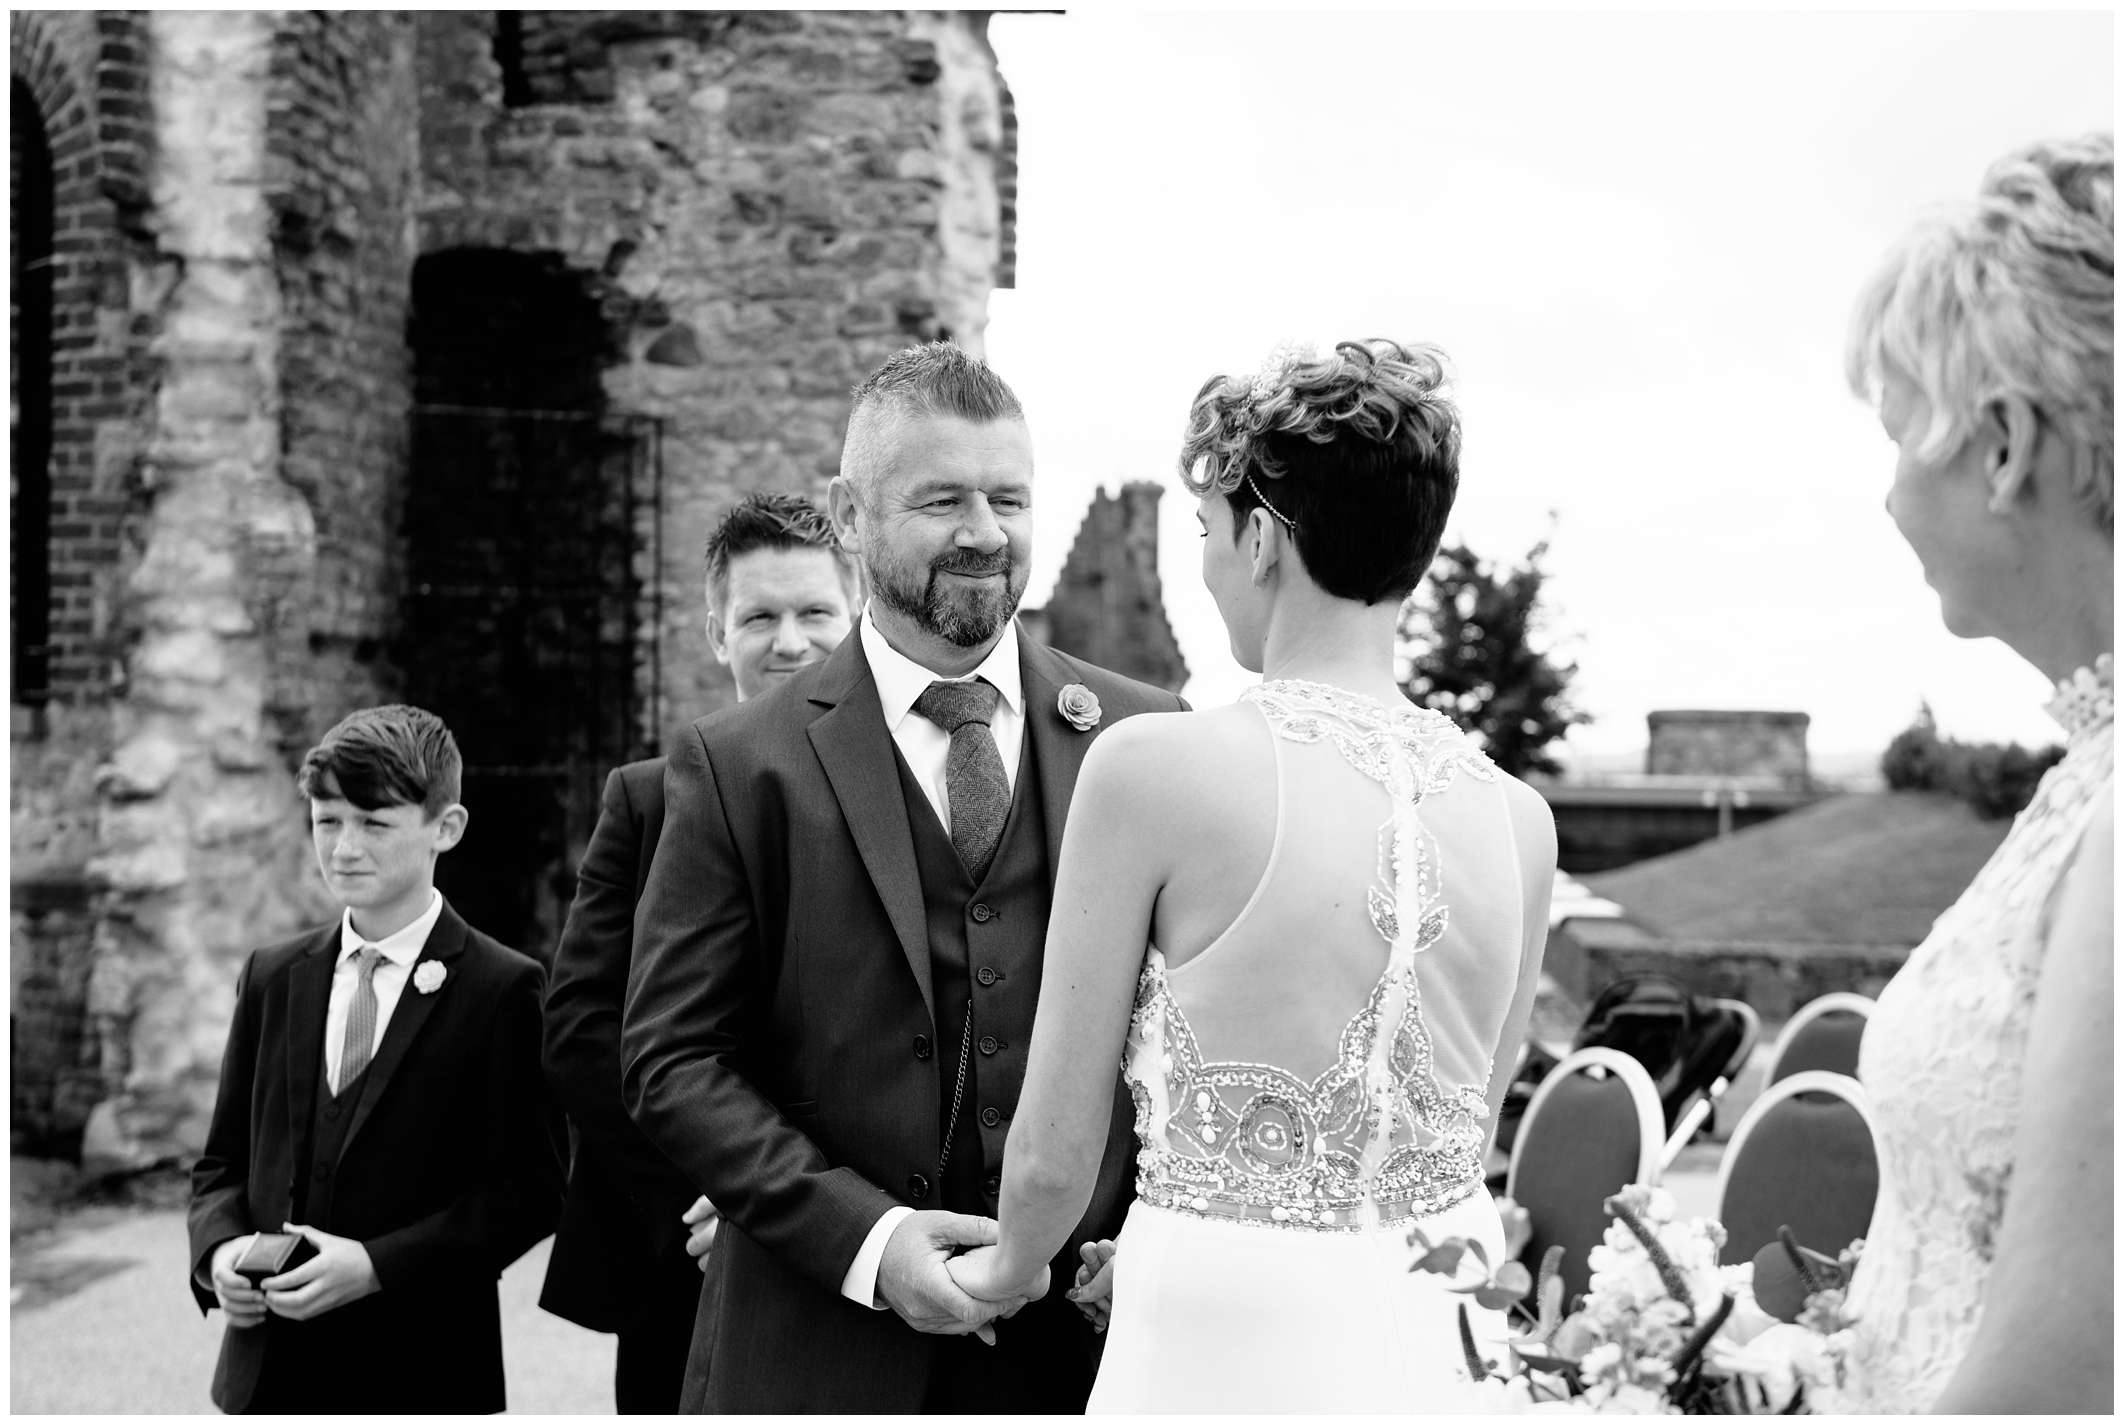 christina_stephen_hill_of_the_oneill_dungannon_wedding_jude_browne_photography_0020.jpg